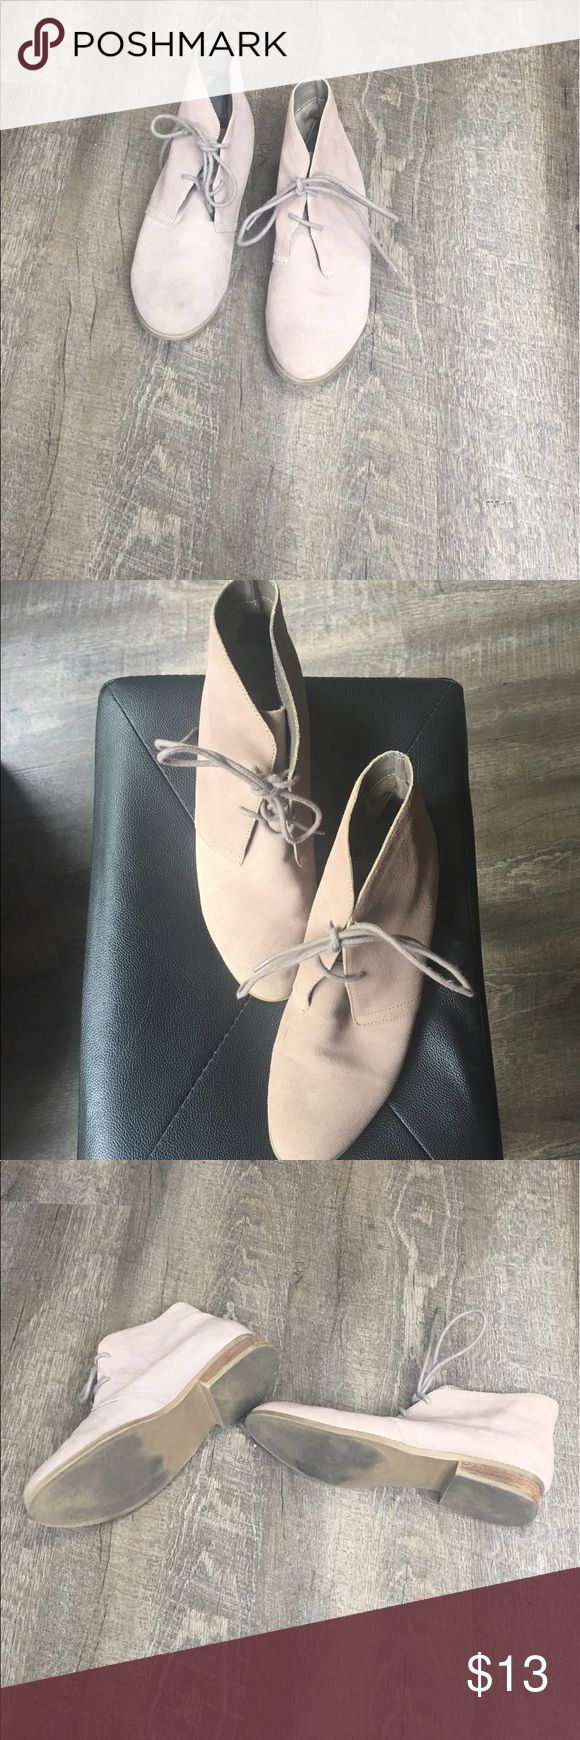 shoes women semi casual size 8 suede shoes Suede, beige, gently used, Steve Madden, size 8, women semi casual dress shoes Steve Madden Shoes